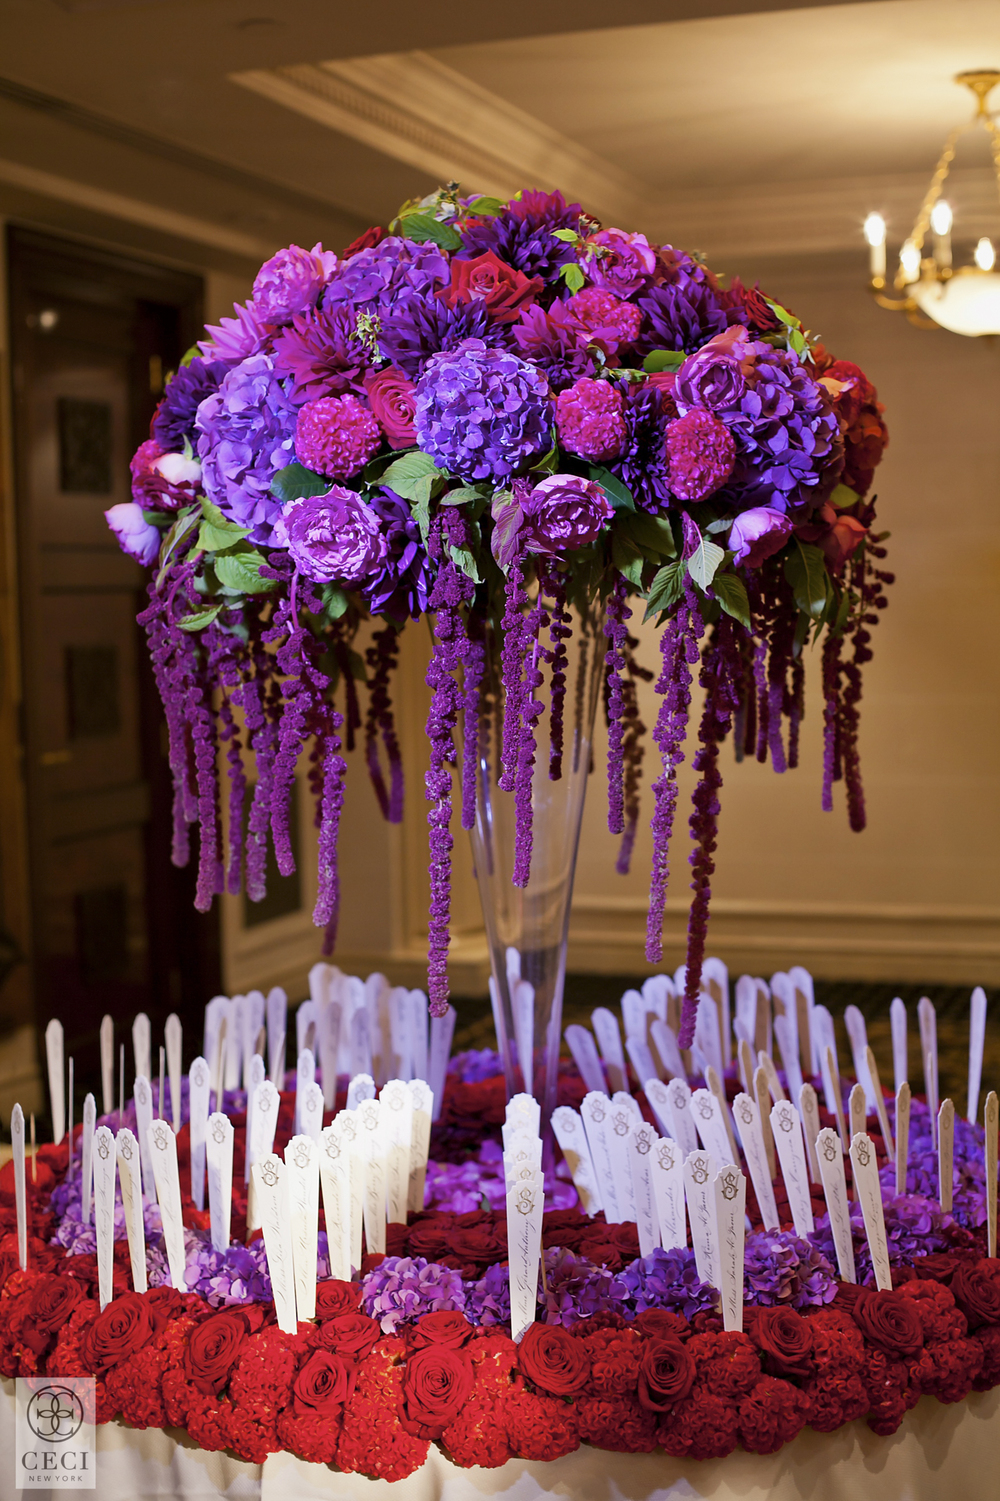 ceci_new_york_lucas_somoza_purple_regal_wediding_birthday_commitment_ceremony_gold-10.jpg